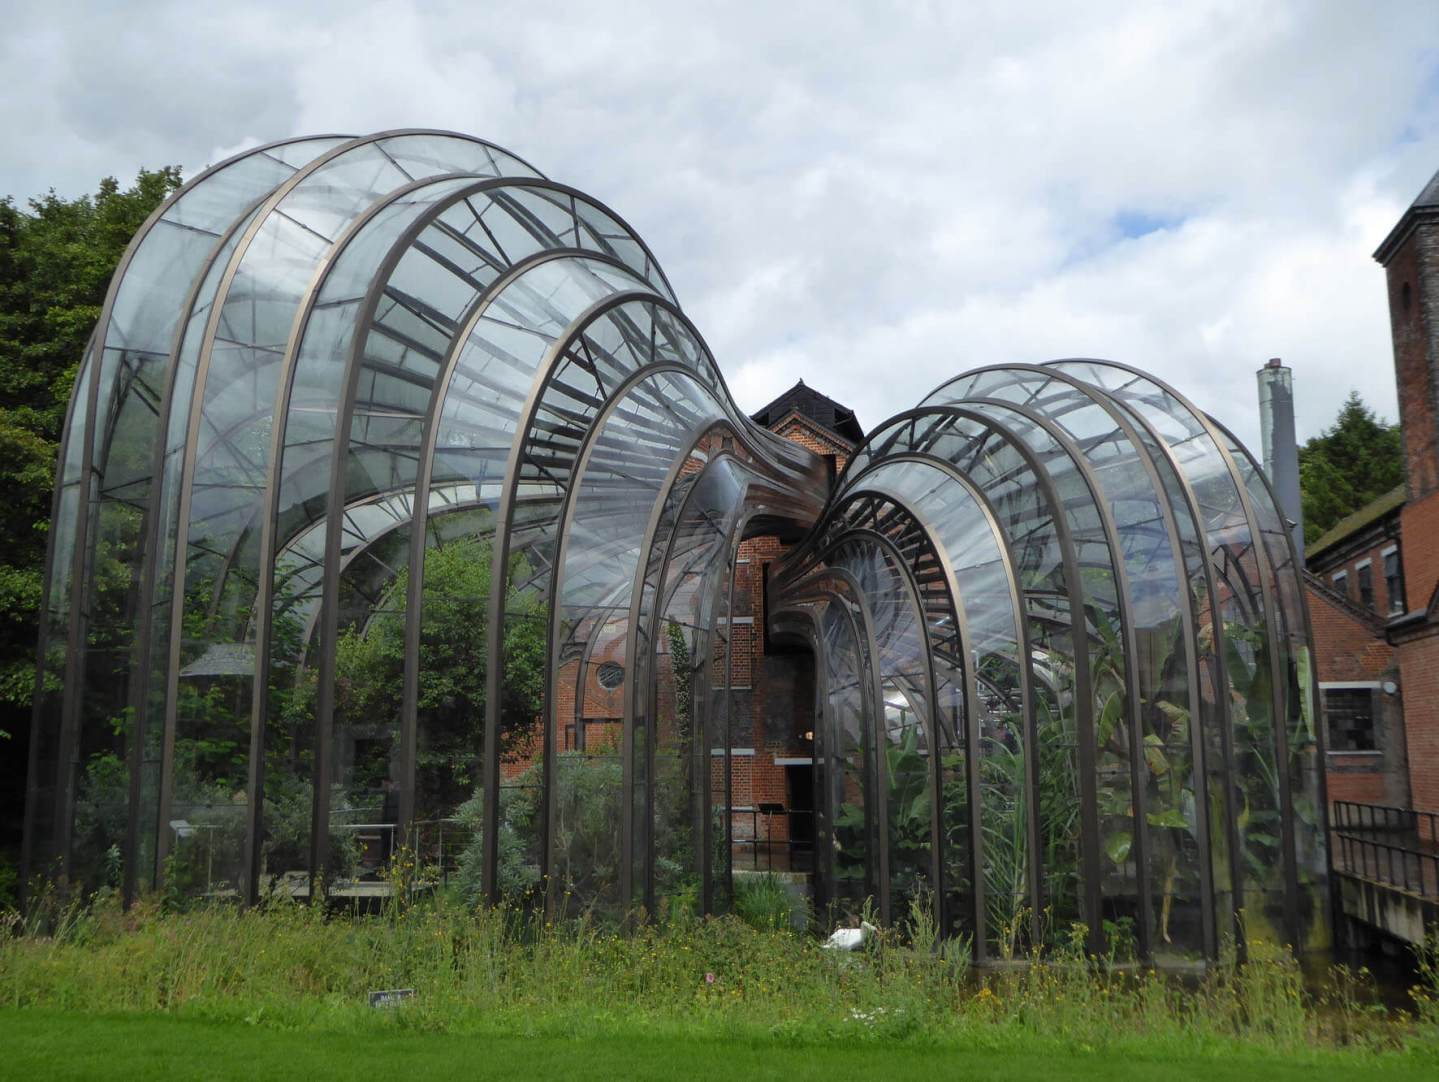 Glorious Gin – A Day Out At The Bombay Sapphire Distillery